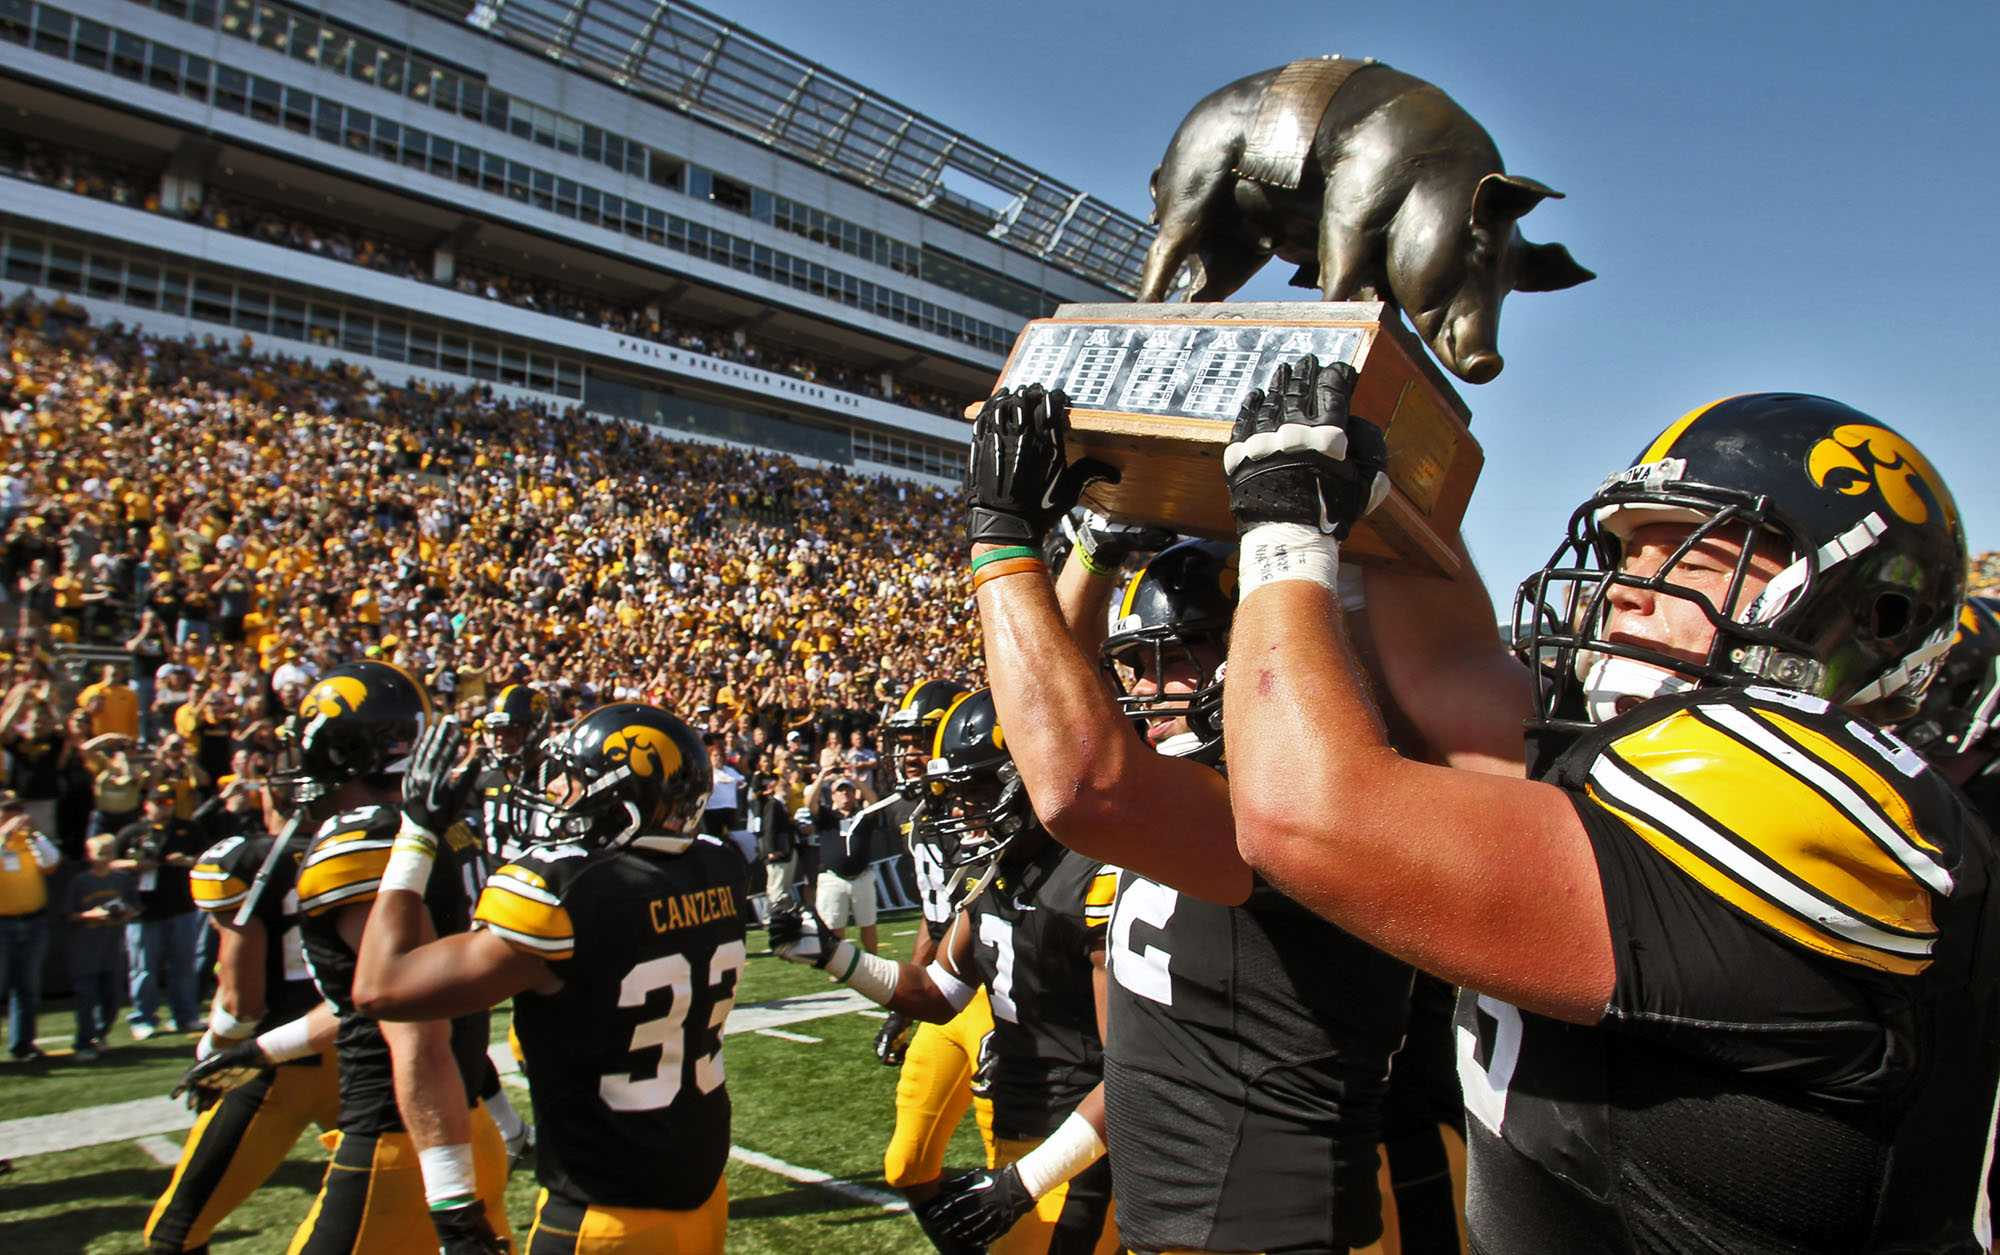 Iowa players carried the Floyd of Rosedale trophy off the field following a 31-13 victory over Minnesota at Kinnick Stadium in Iowa City, Iowa, Saturday, September 29, 2012. (Marlin Levison/Minneapolis Star Tribune/MCT)